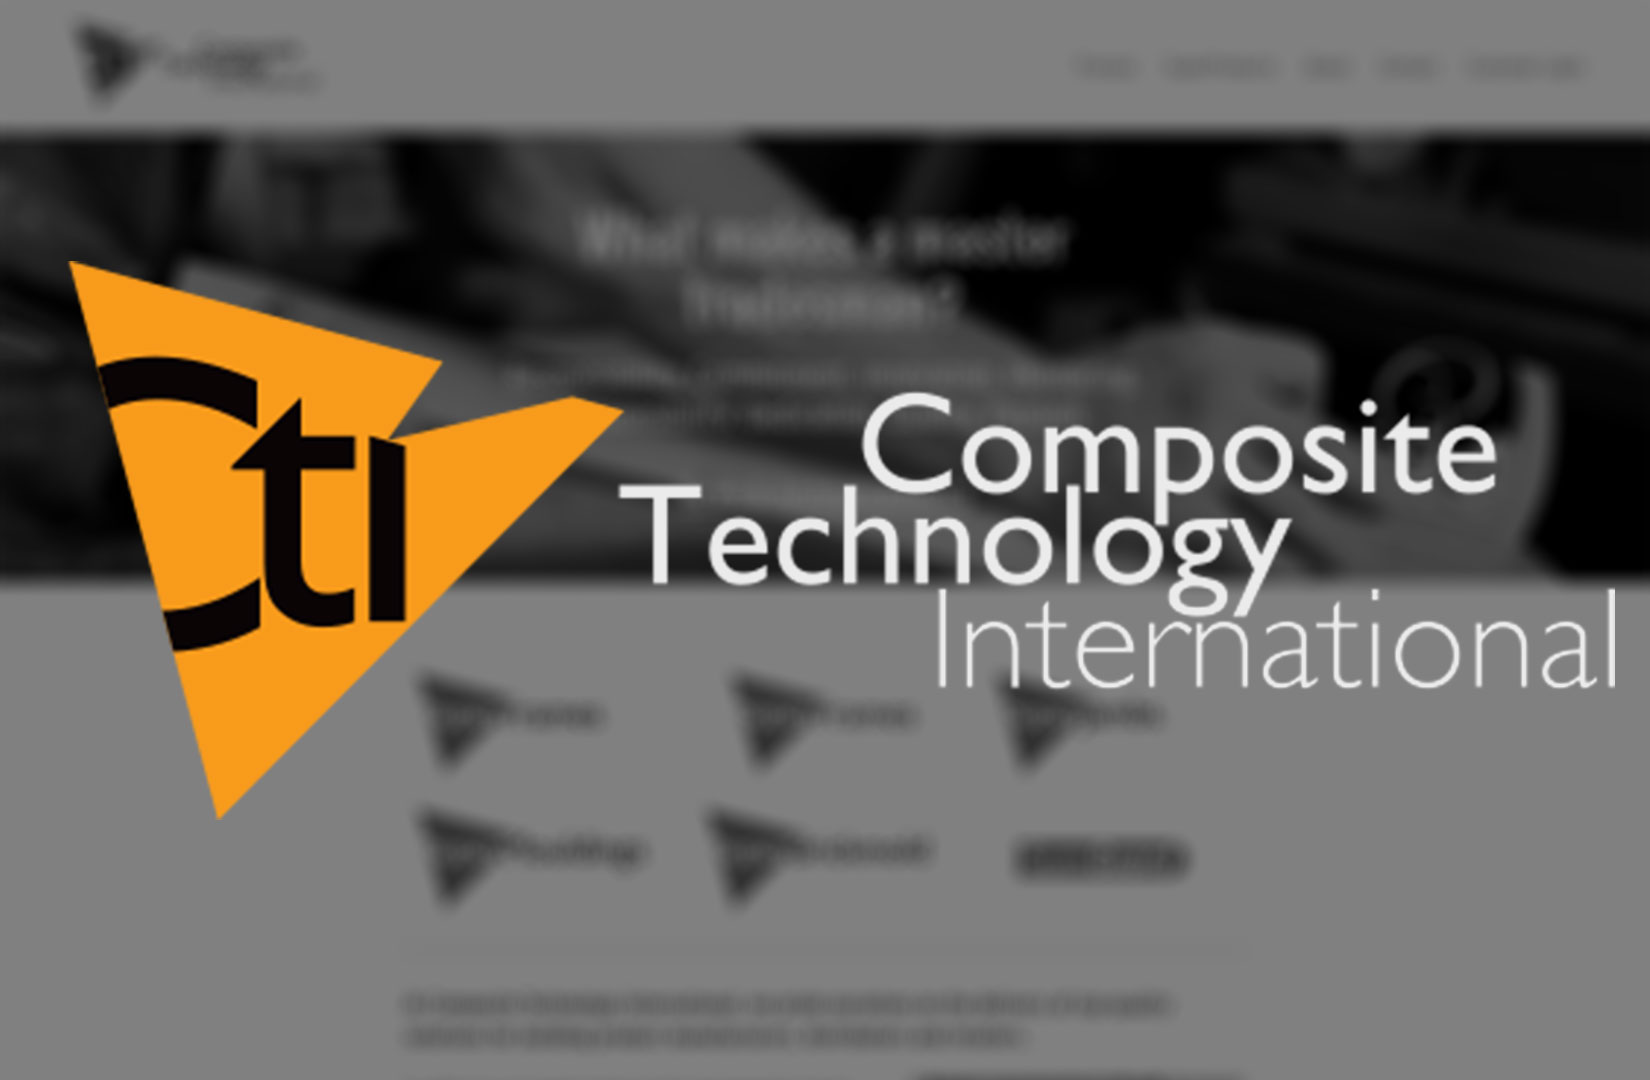 Composite Technology Internation Provides Sustainable Building Products | CTI was an EnVision Corporation Environmental Incubator Project | EnVision has fully divested from Composite Technology International